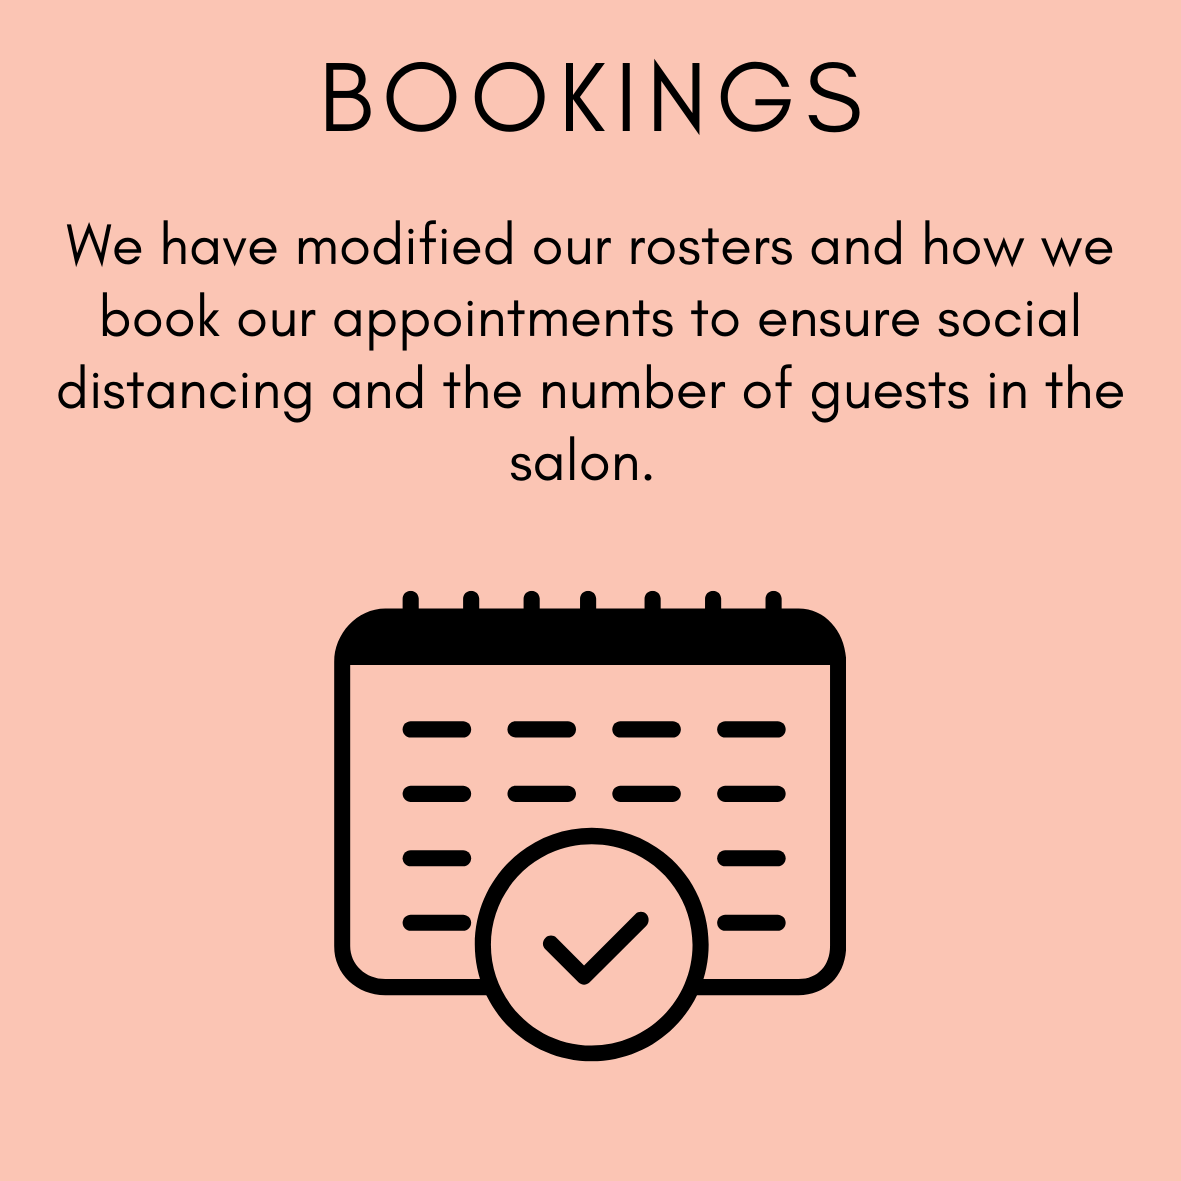 we are modifying how we book appointments at Zucci